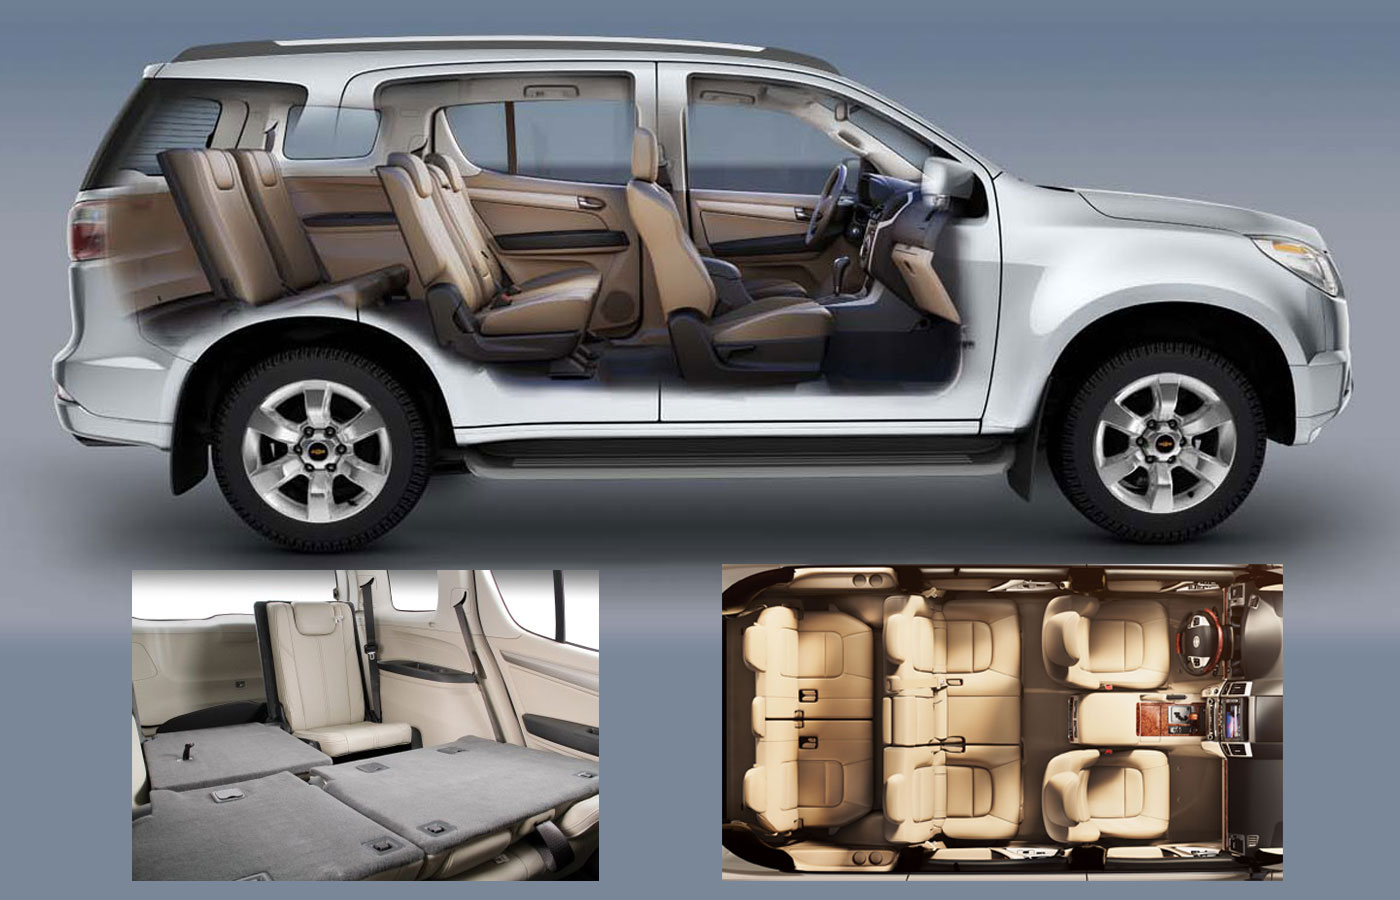 Chevrolet Trailblazer 2015 >> Chevrolet Trailblazer 2015 Suv Drive